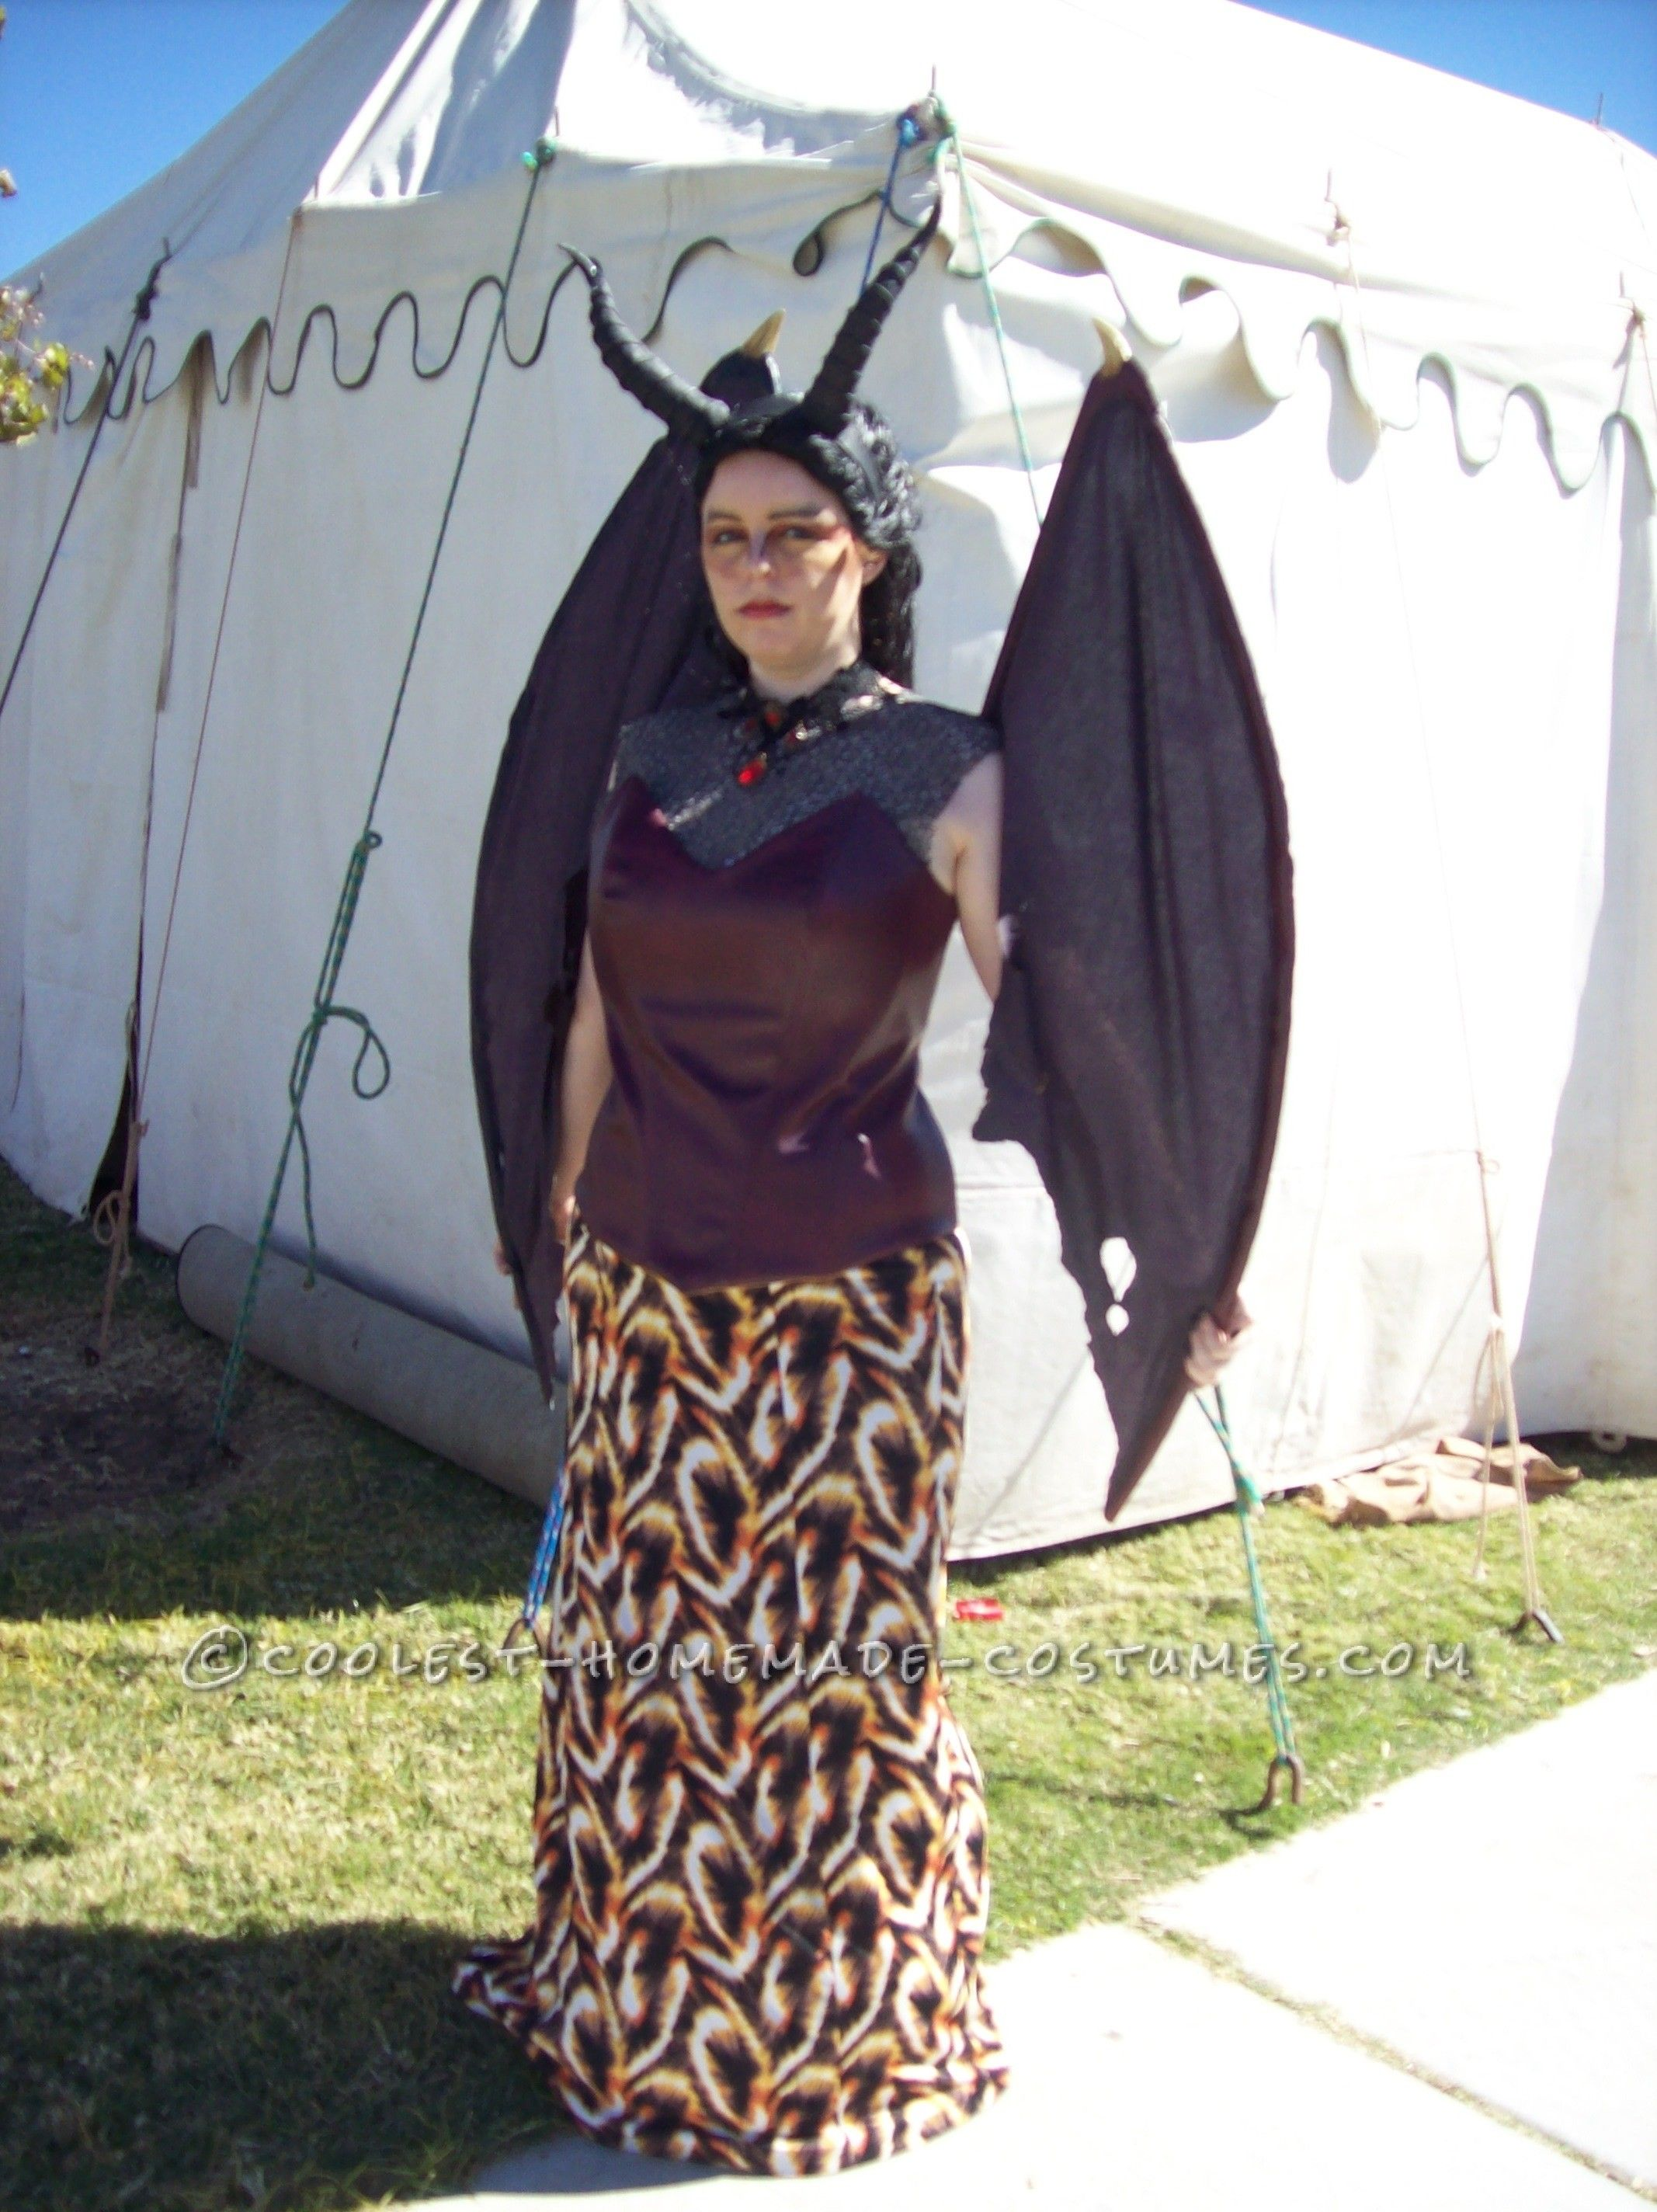 Beautiful Handmade Queen Smaug the Magnificent Costume… Coolest Halloween Costume Contest